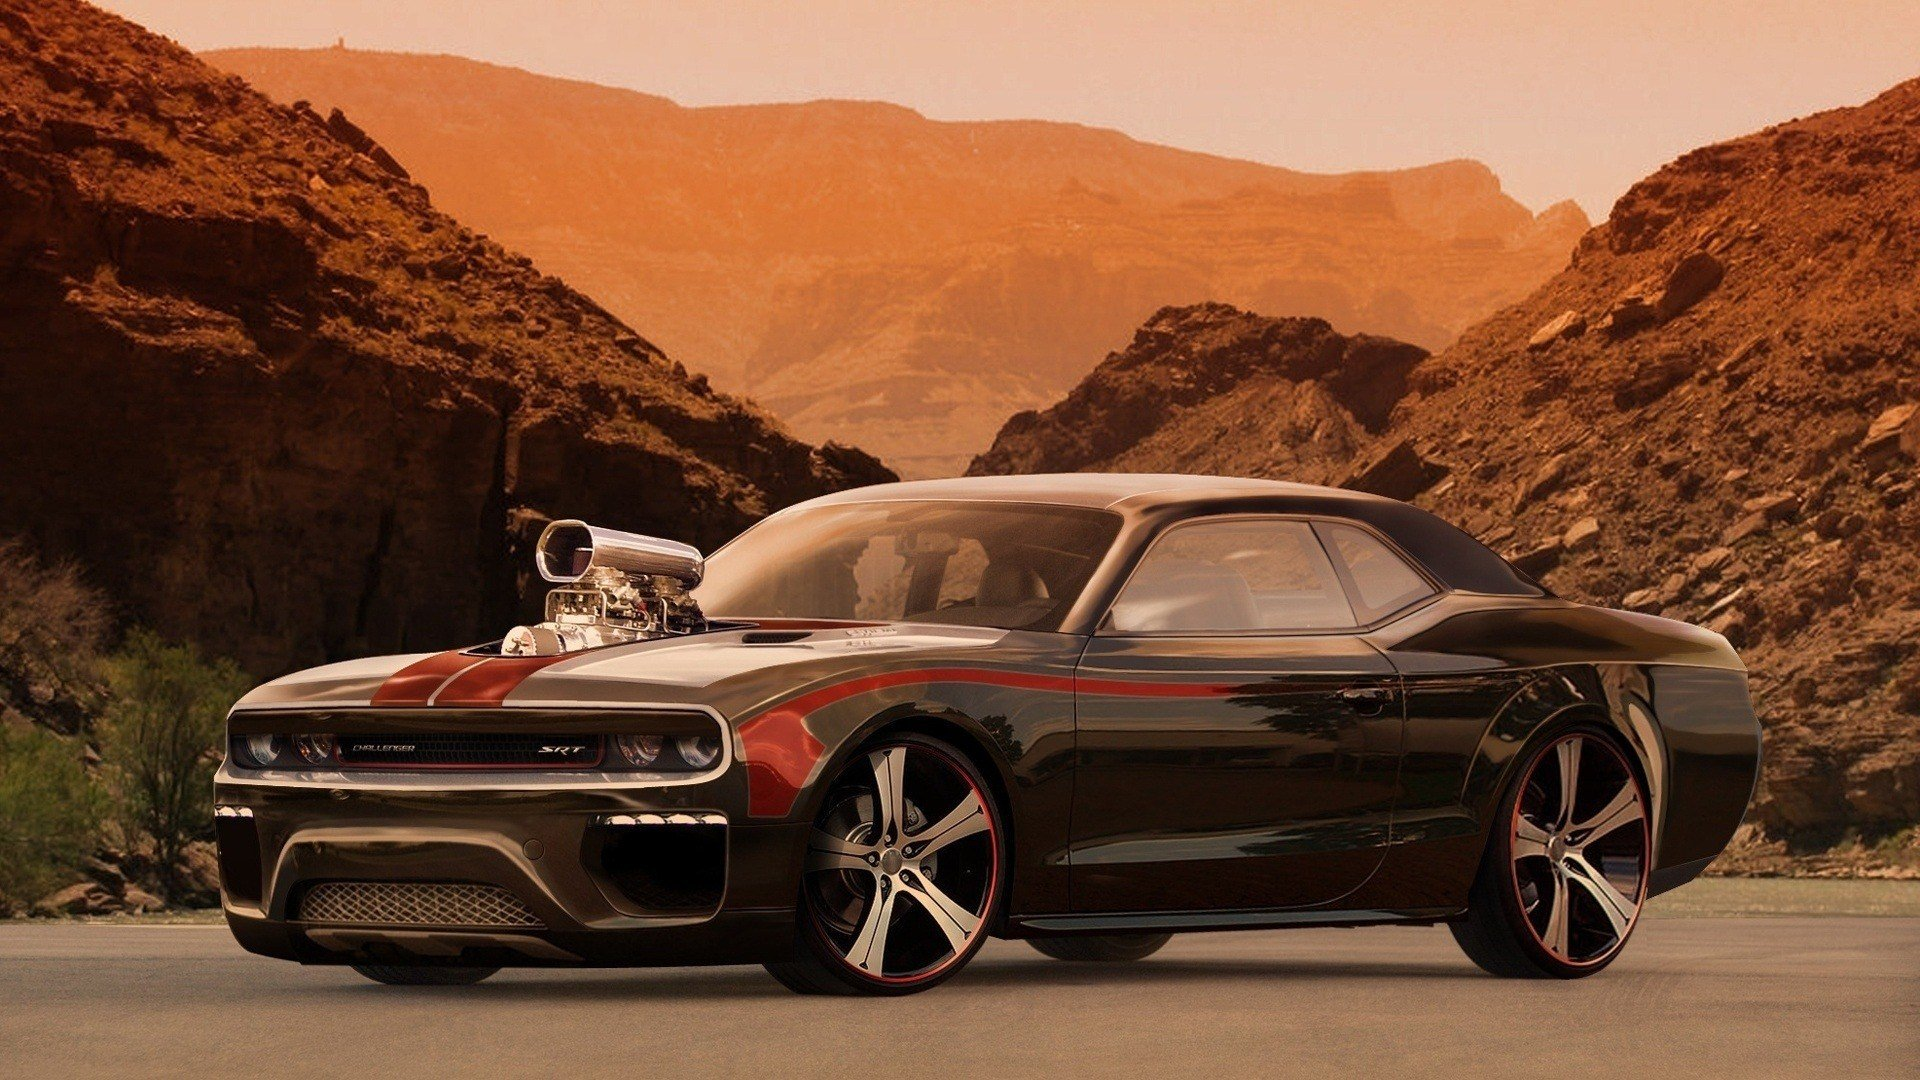 New Free Download Dodge Challenger Backgrounds Pixelstalk Net On This Month